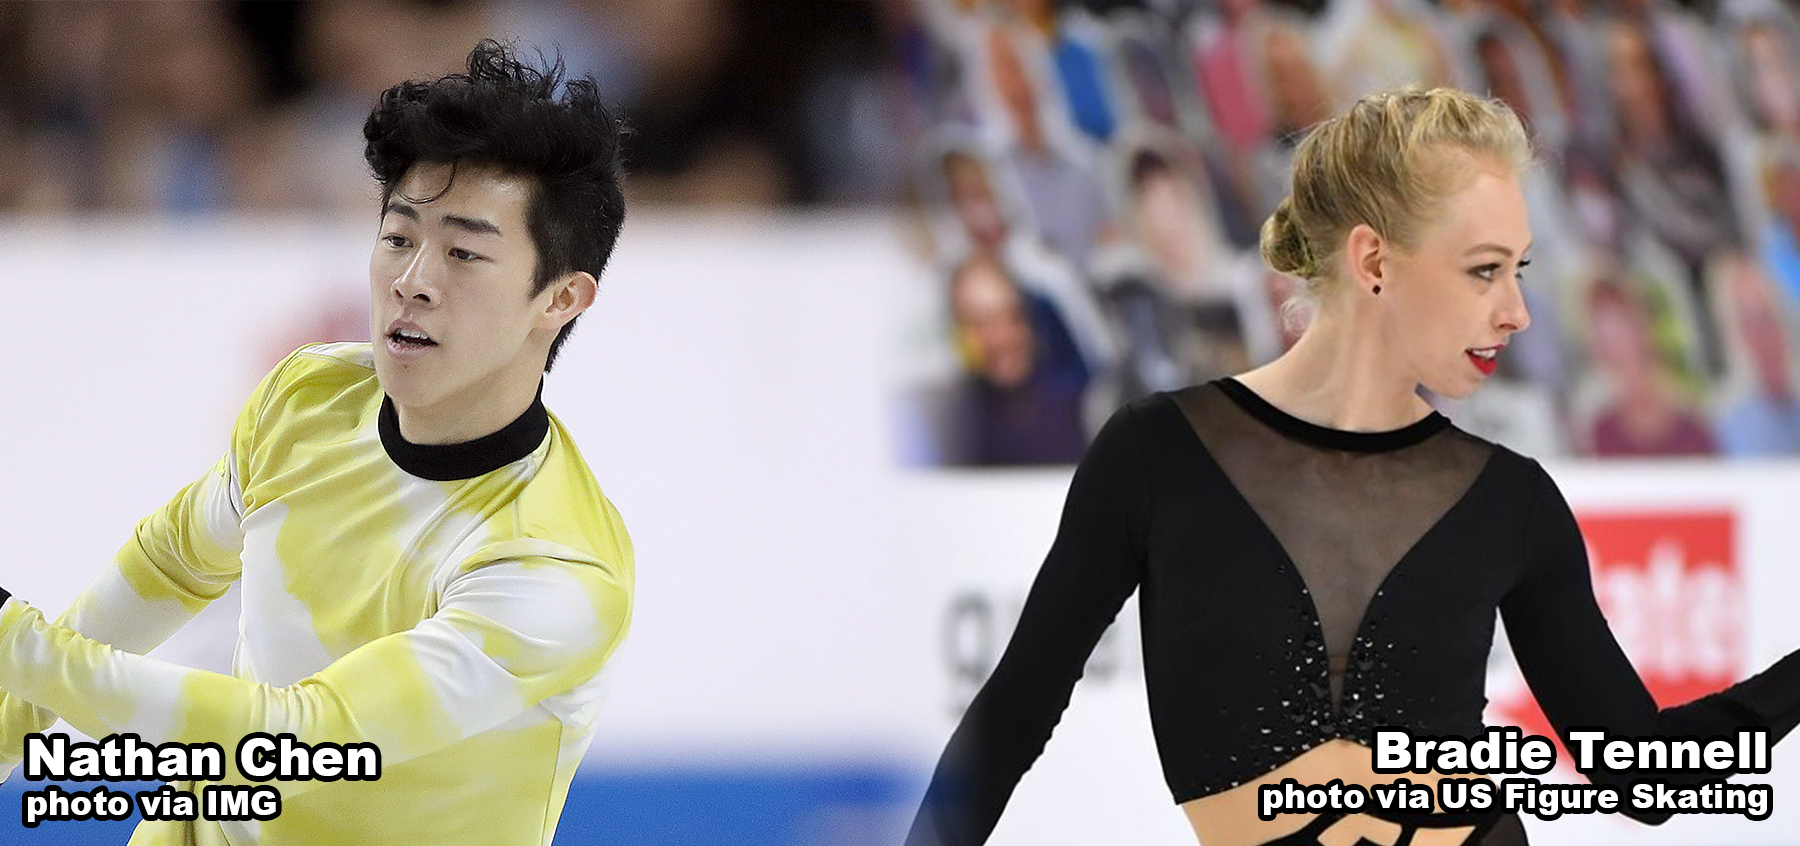 Nathan Chen and Bradie Tennell